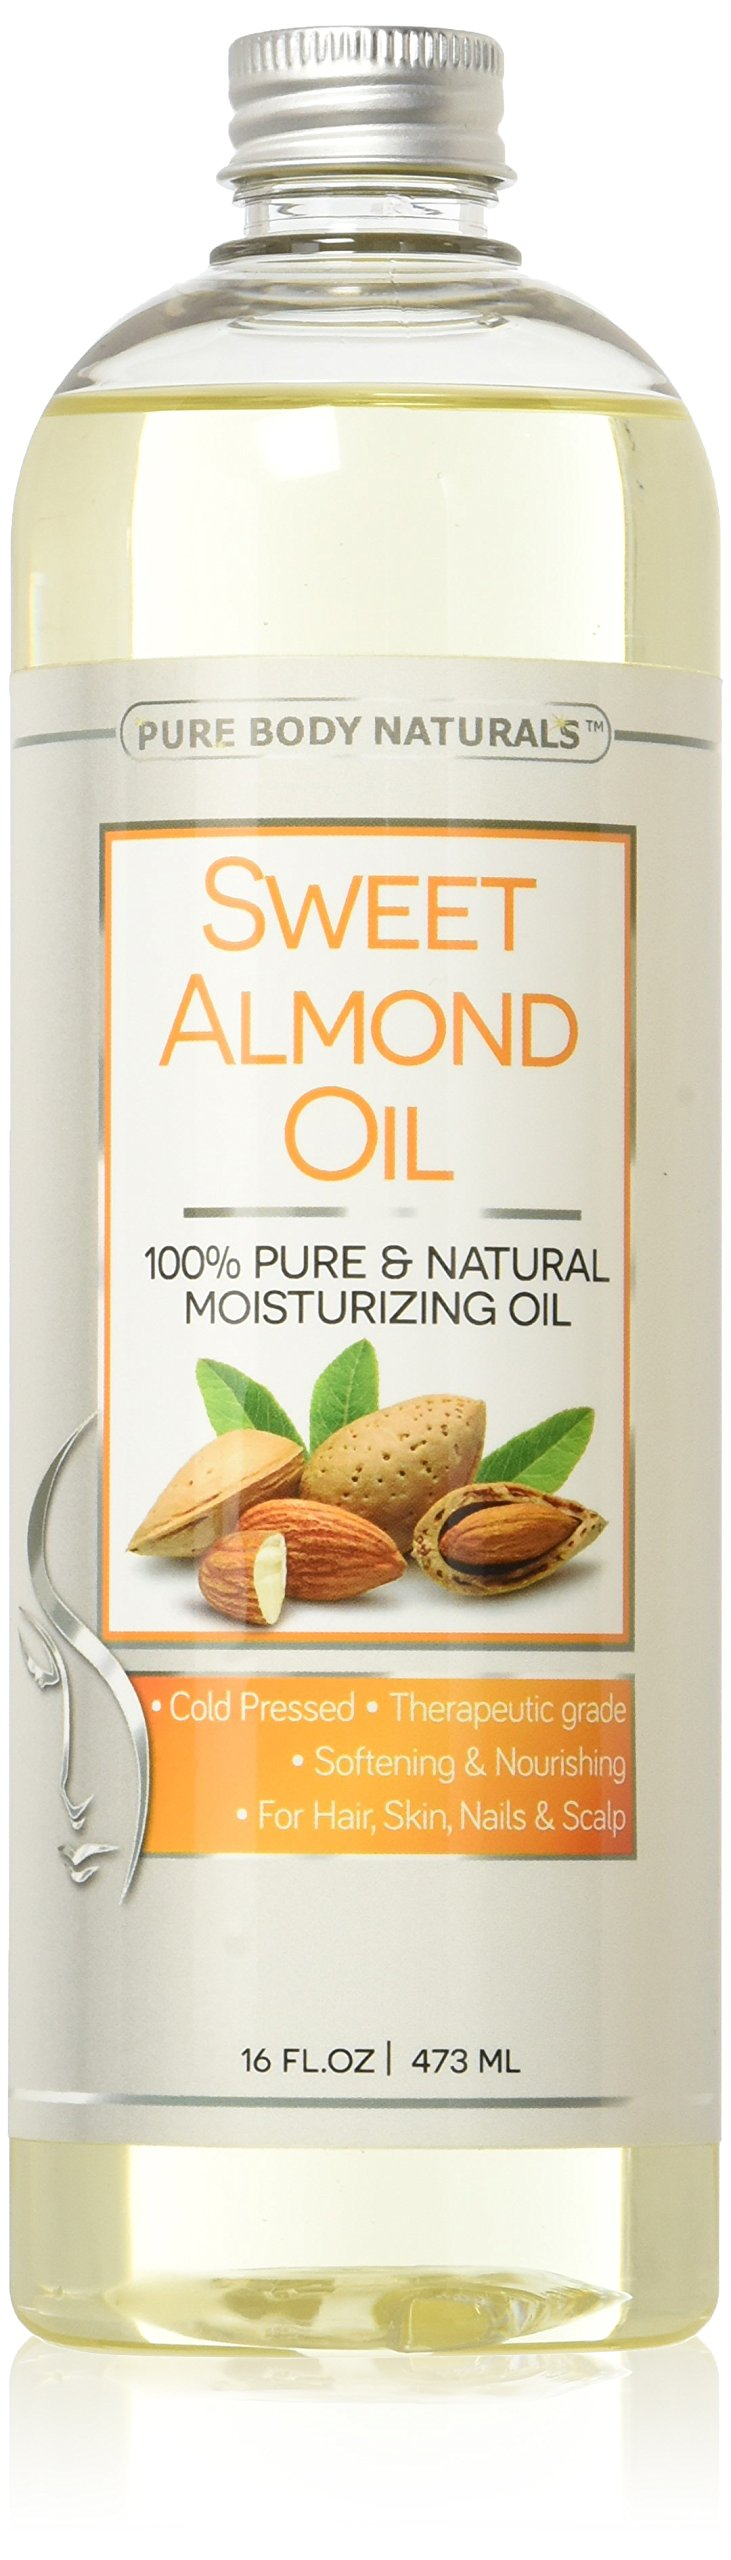 Pure Body Naturals Cold Pressed Sweet Almond Oil for Skin, Hair, and Carrier for Essential Oils - 16 Fl. Ounce